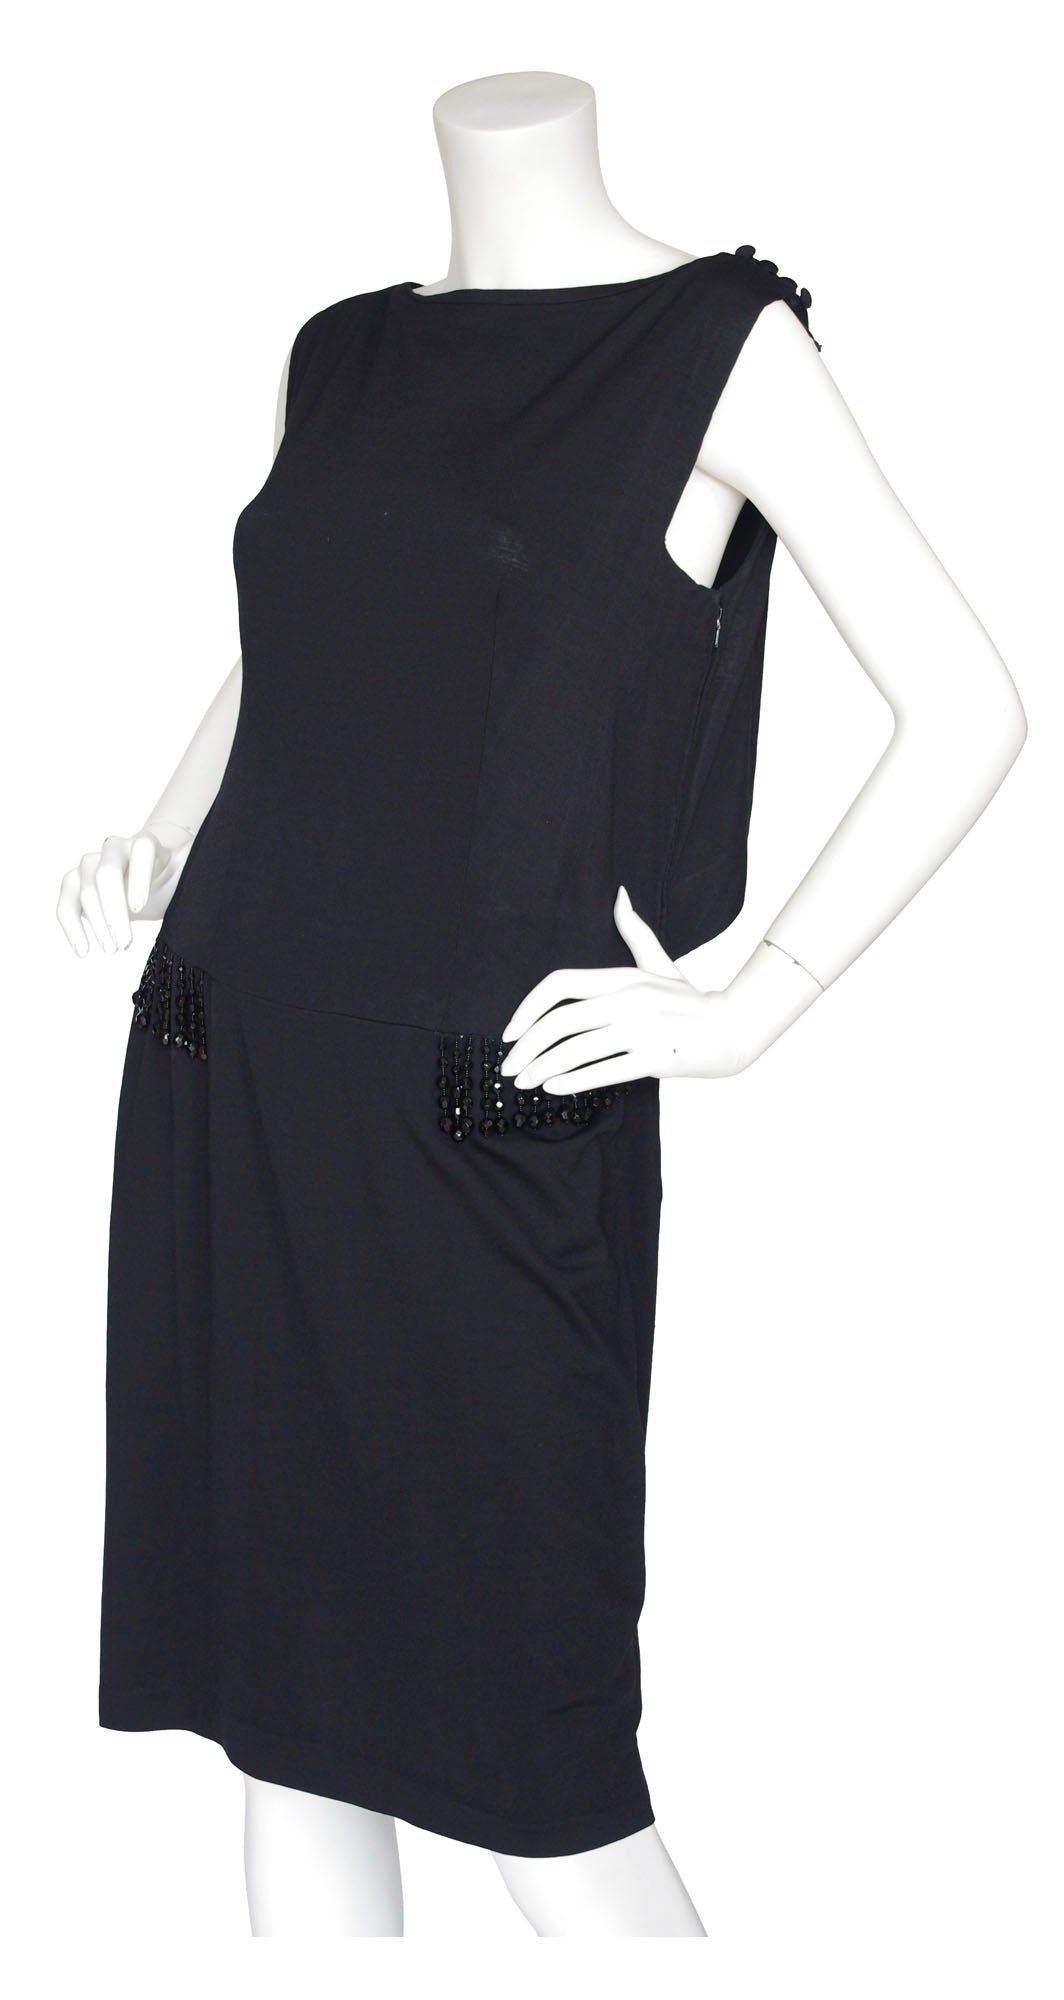 1960s Black Wool Jersey Beaded Cocktail Dress